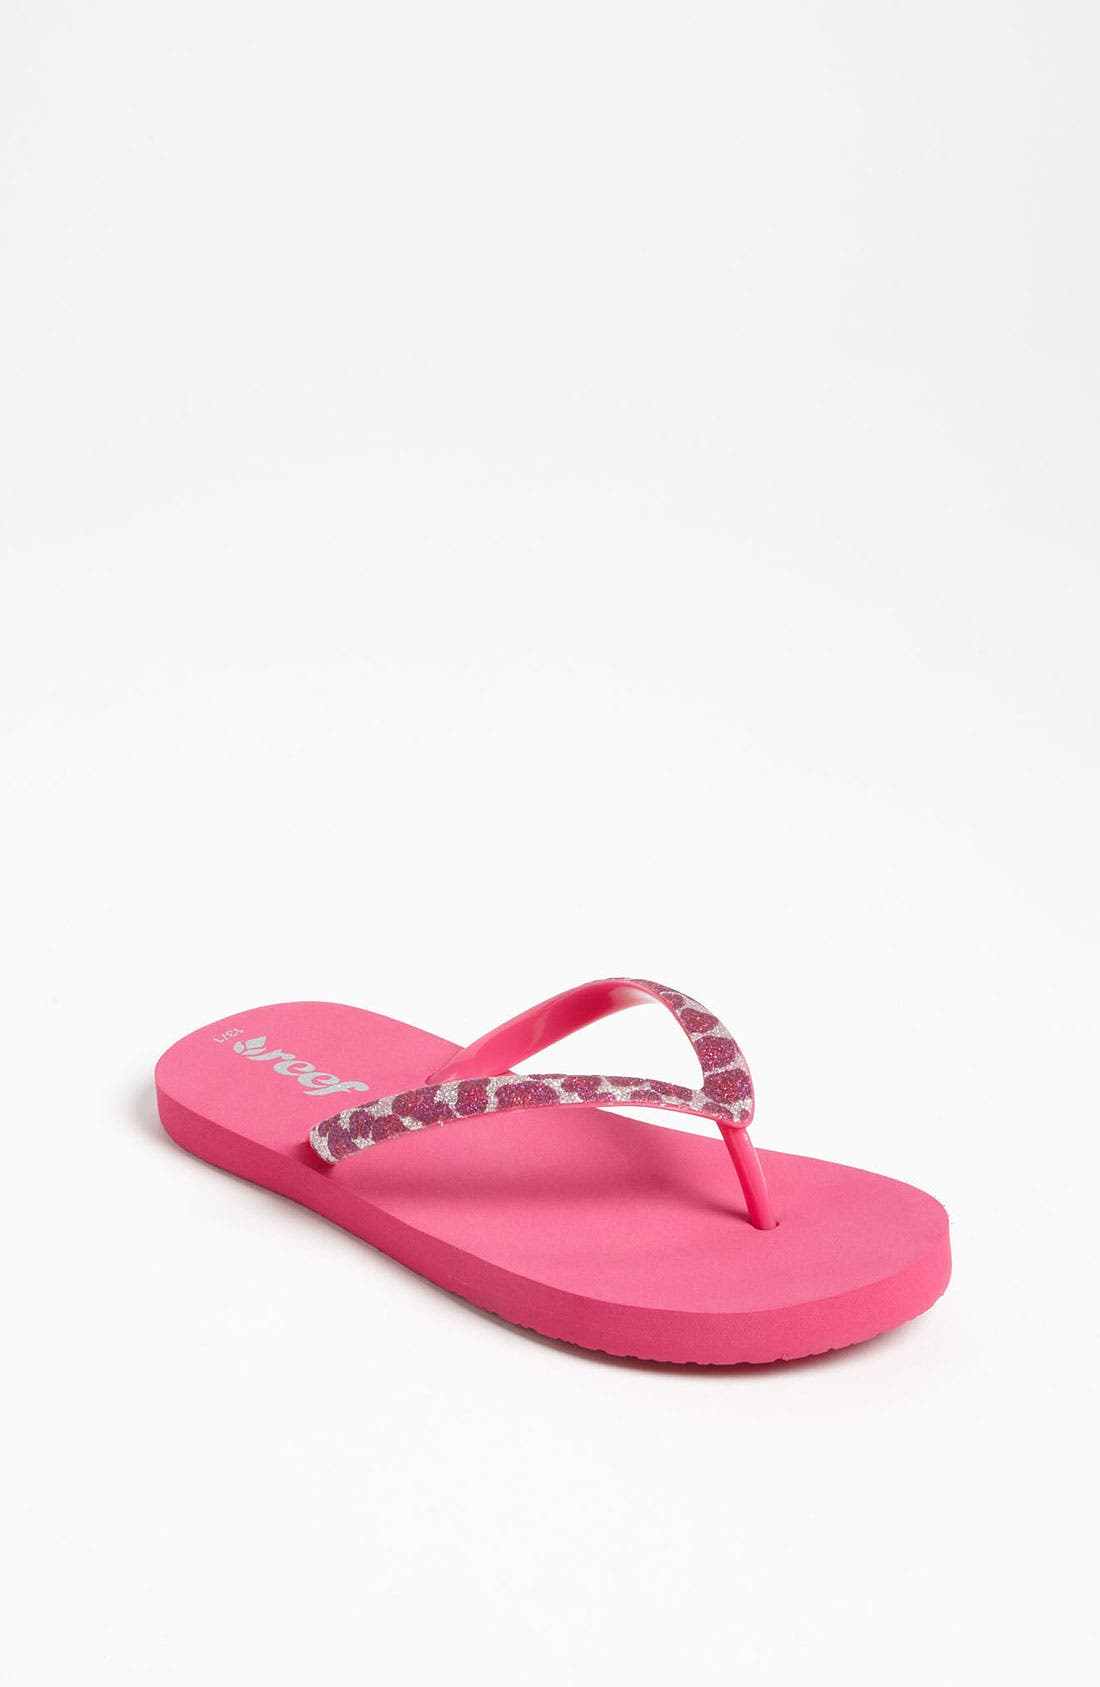 Alternate Image 1 Selected - REEF LITTLE STARGAZER LUXE SANDAL